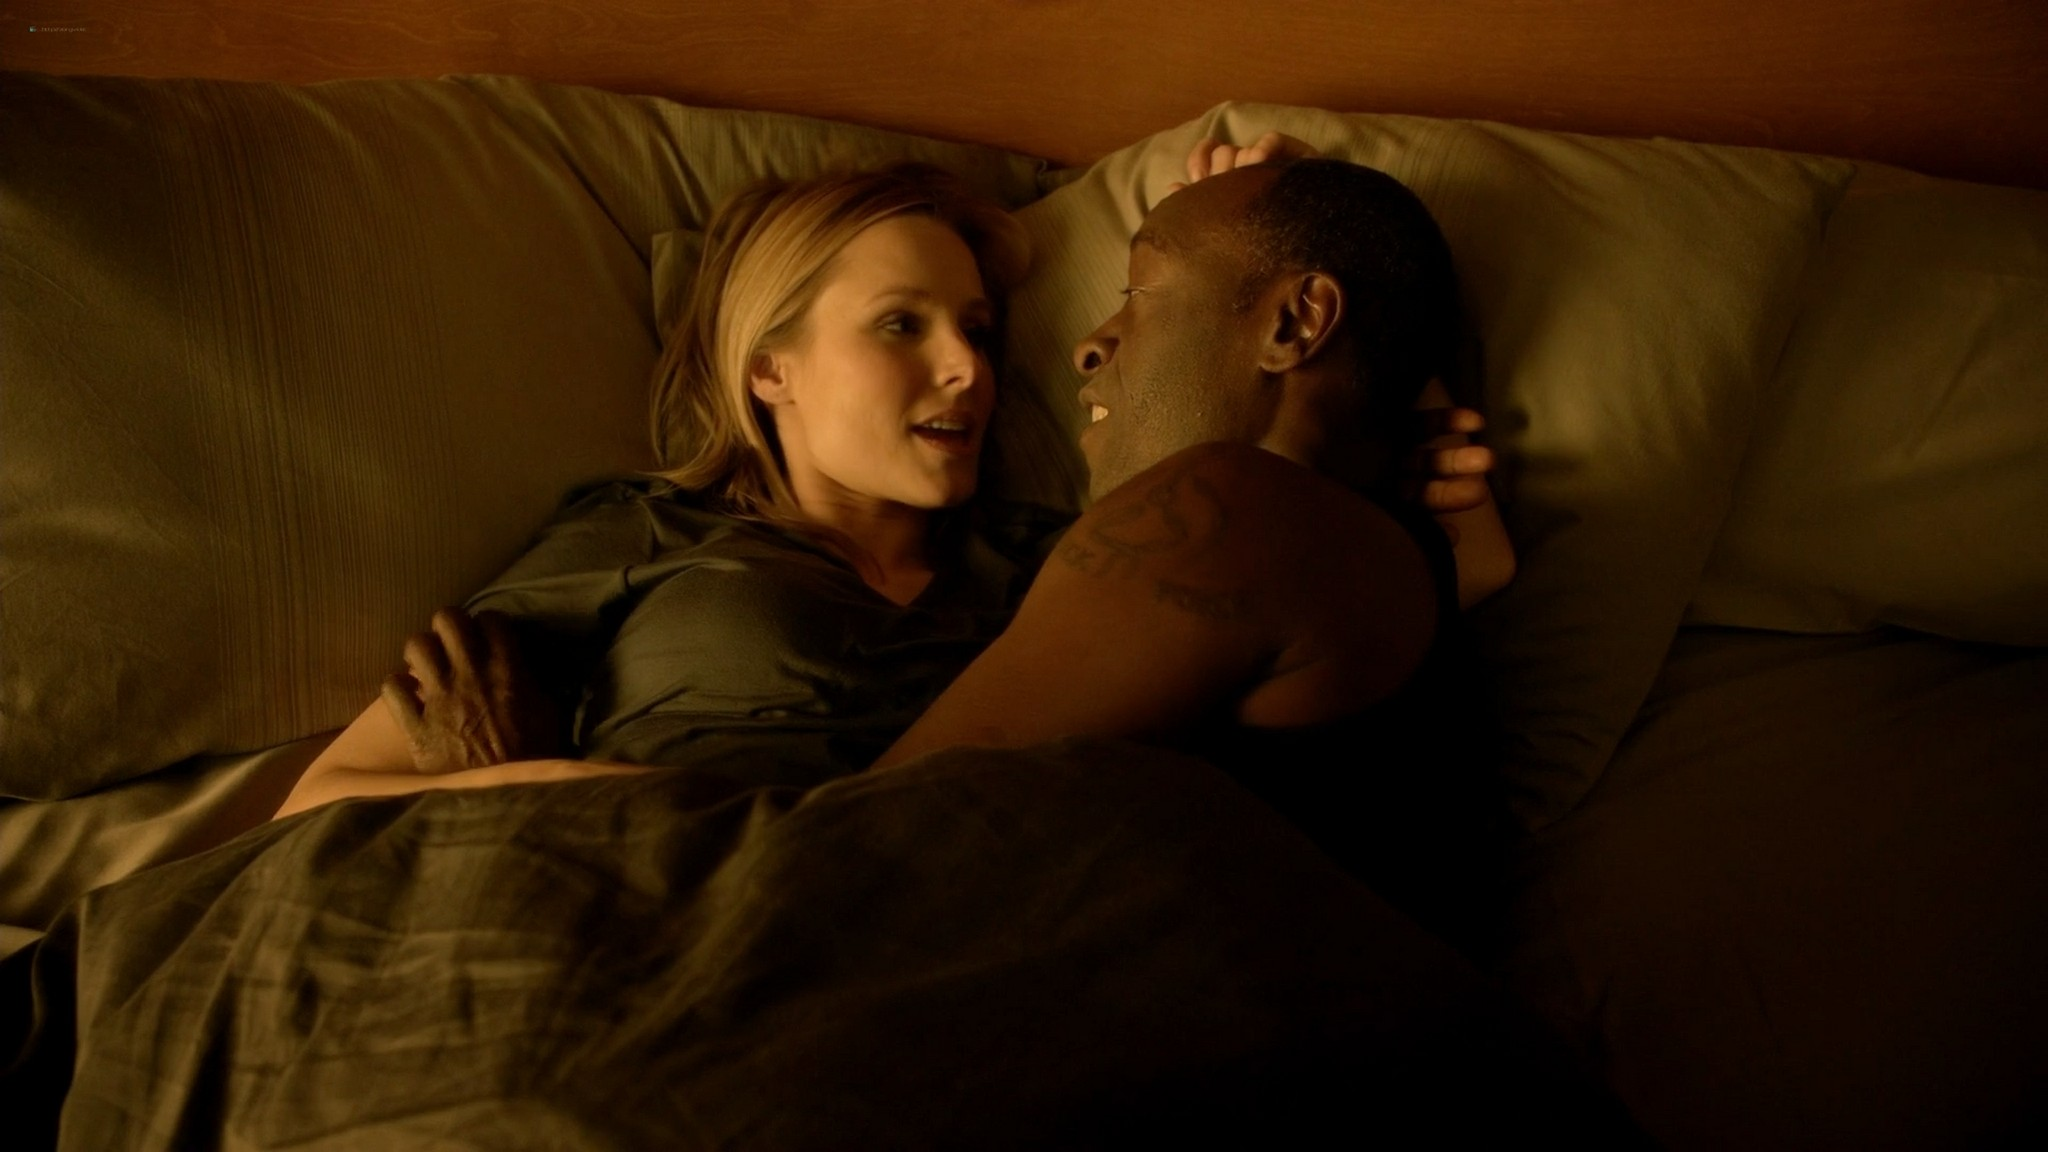 Kristen Bell hot and some sex House of Lies s03 2014 1080p Web 14